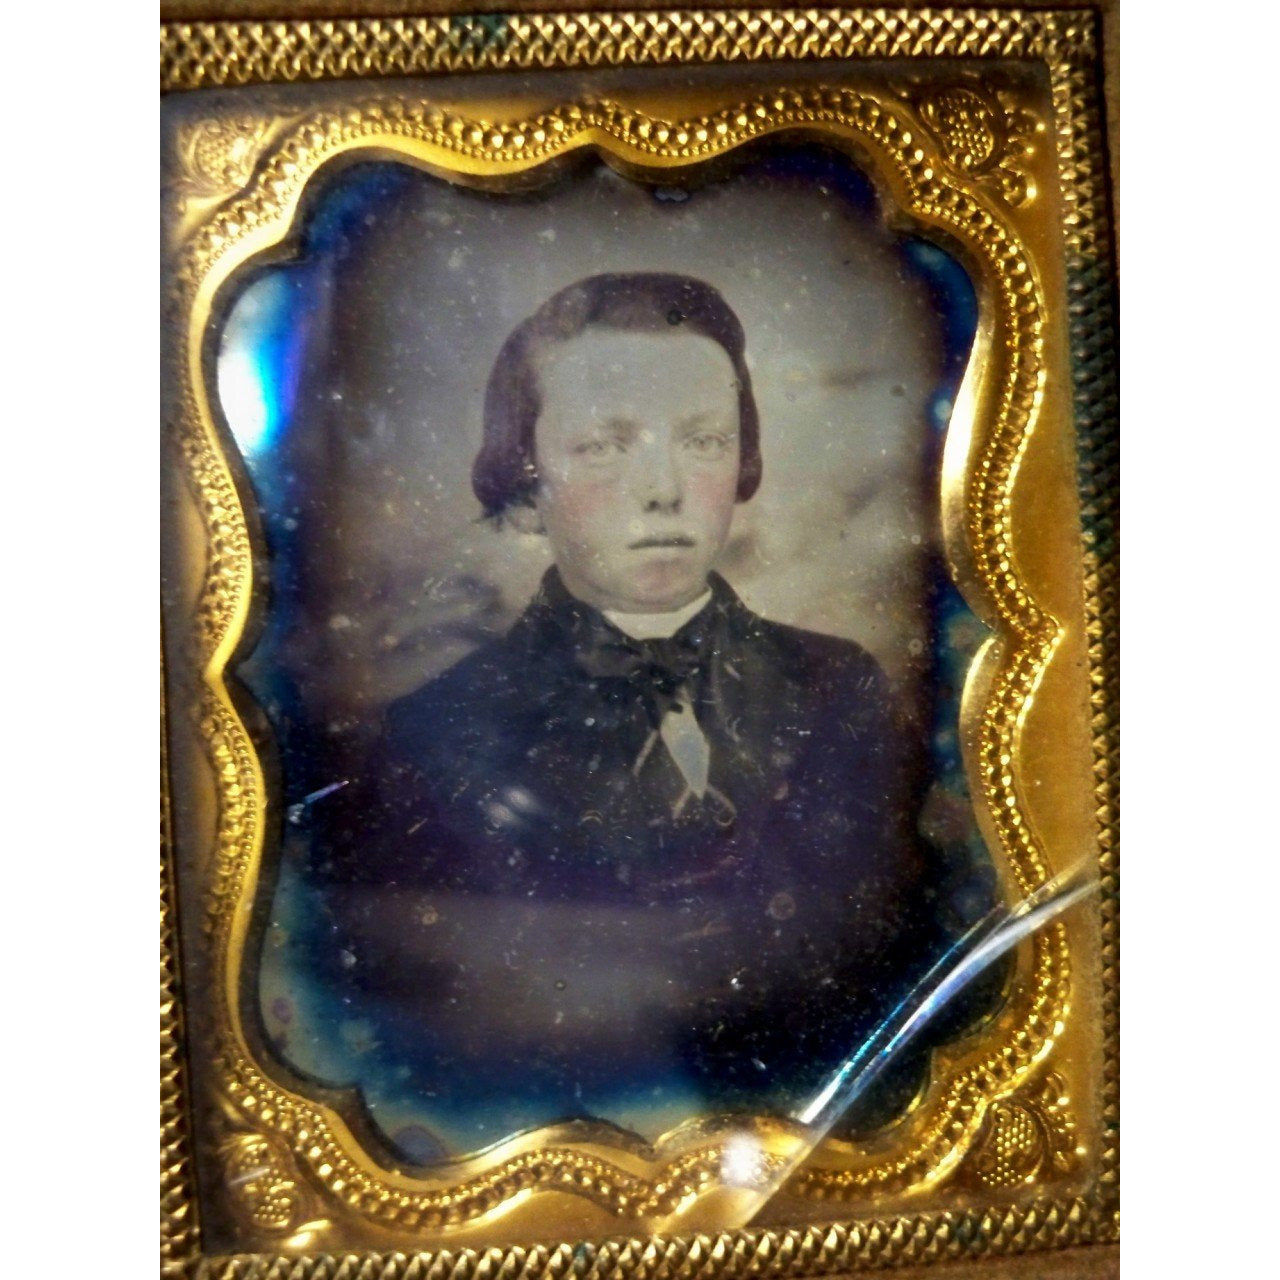 Antique Daguerreotype Young Boy in Gold Case - The Best Vintage Clothing  - 1